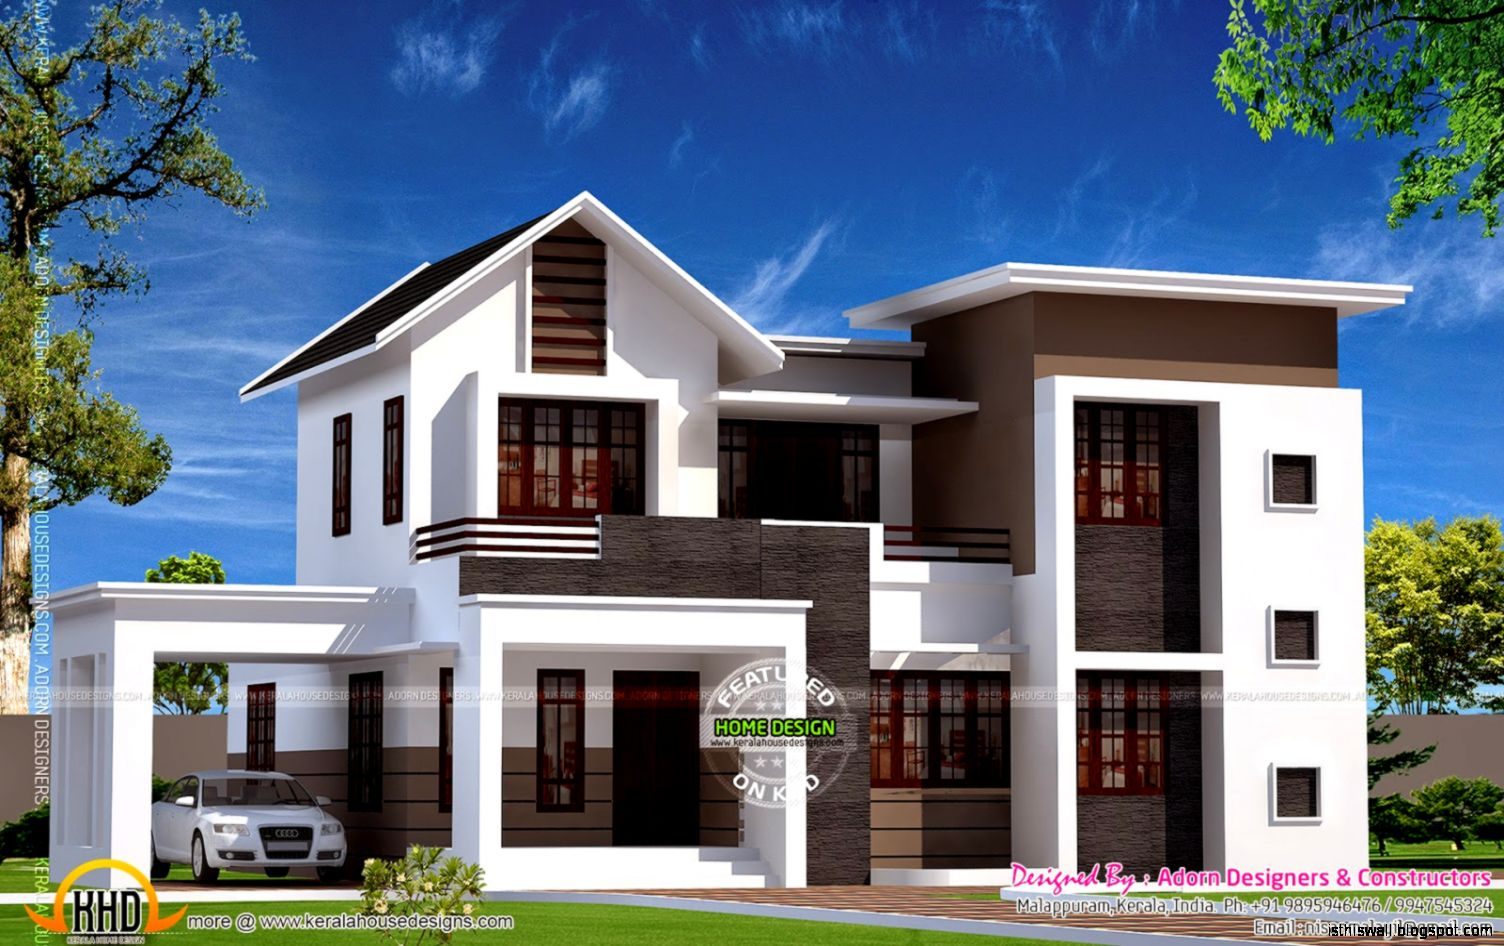 Home houses design this wallpapers Home building design